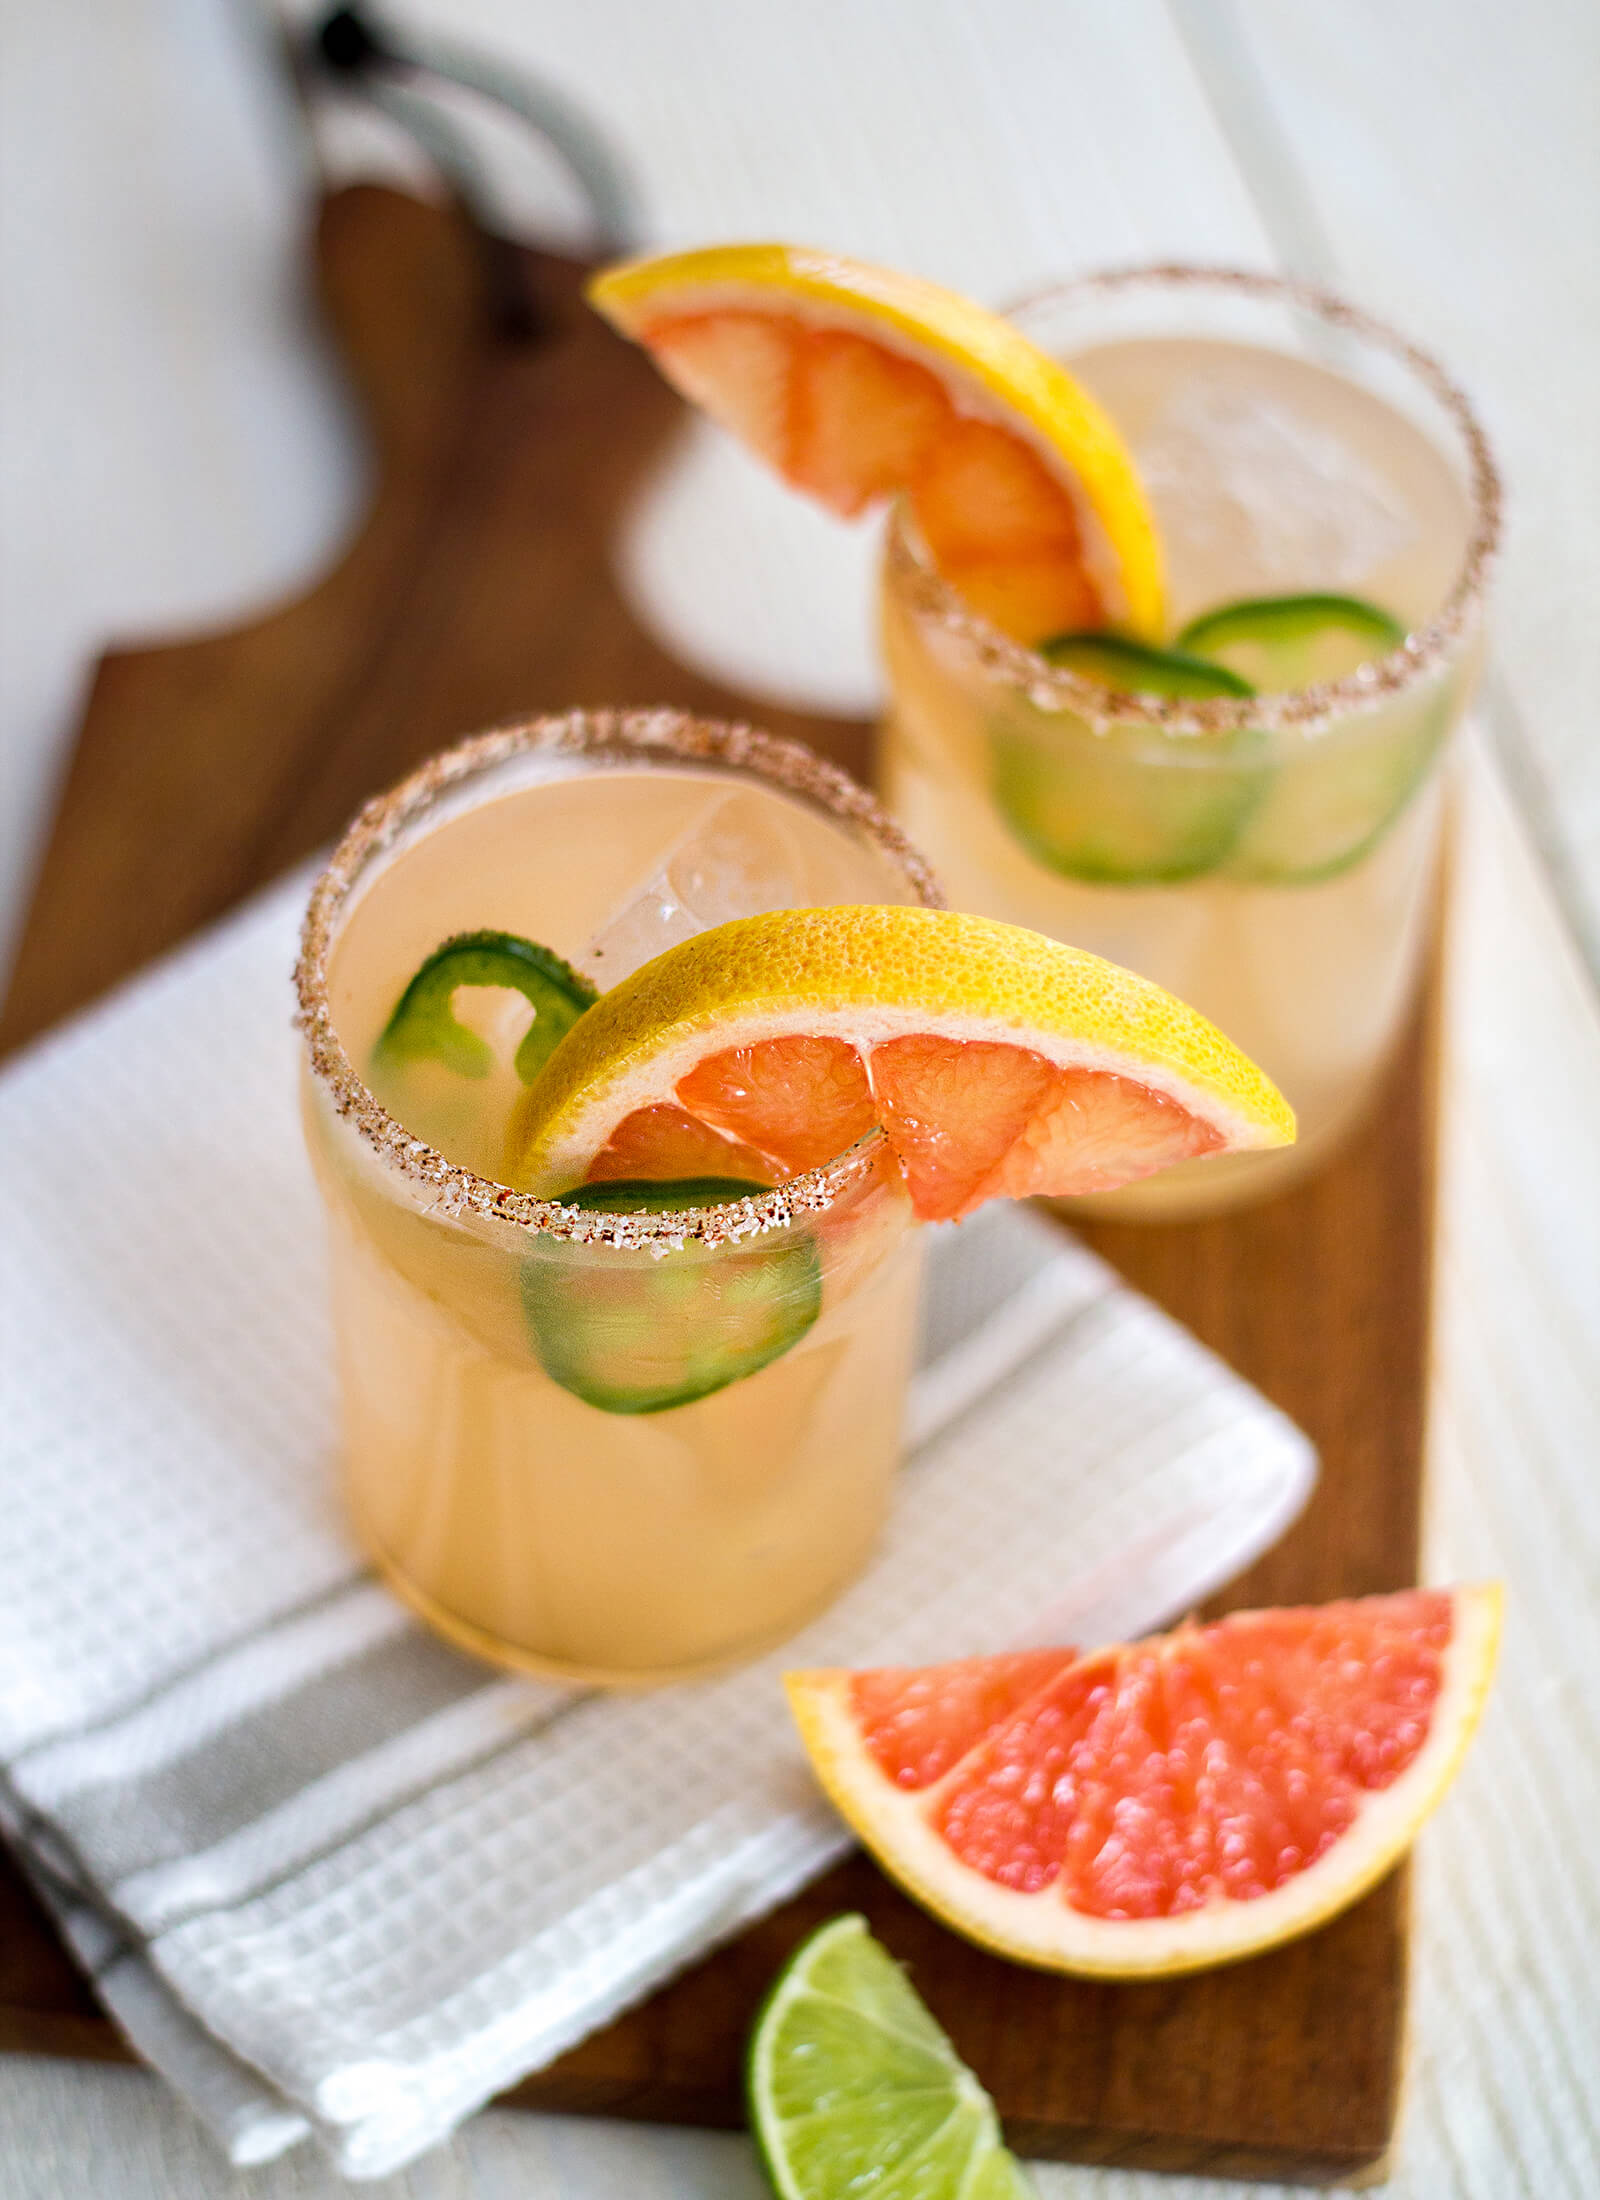 Easy-to-make grapefruit margaritas with a spicy kick! If you're a tequila lover and you like spicy food—the spicy grapefruit margarita won't disappoint. Recipe at www.designsofanykind.com